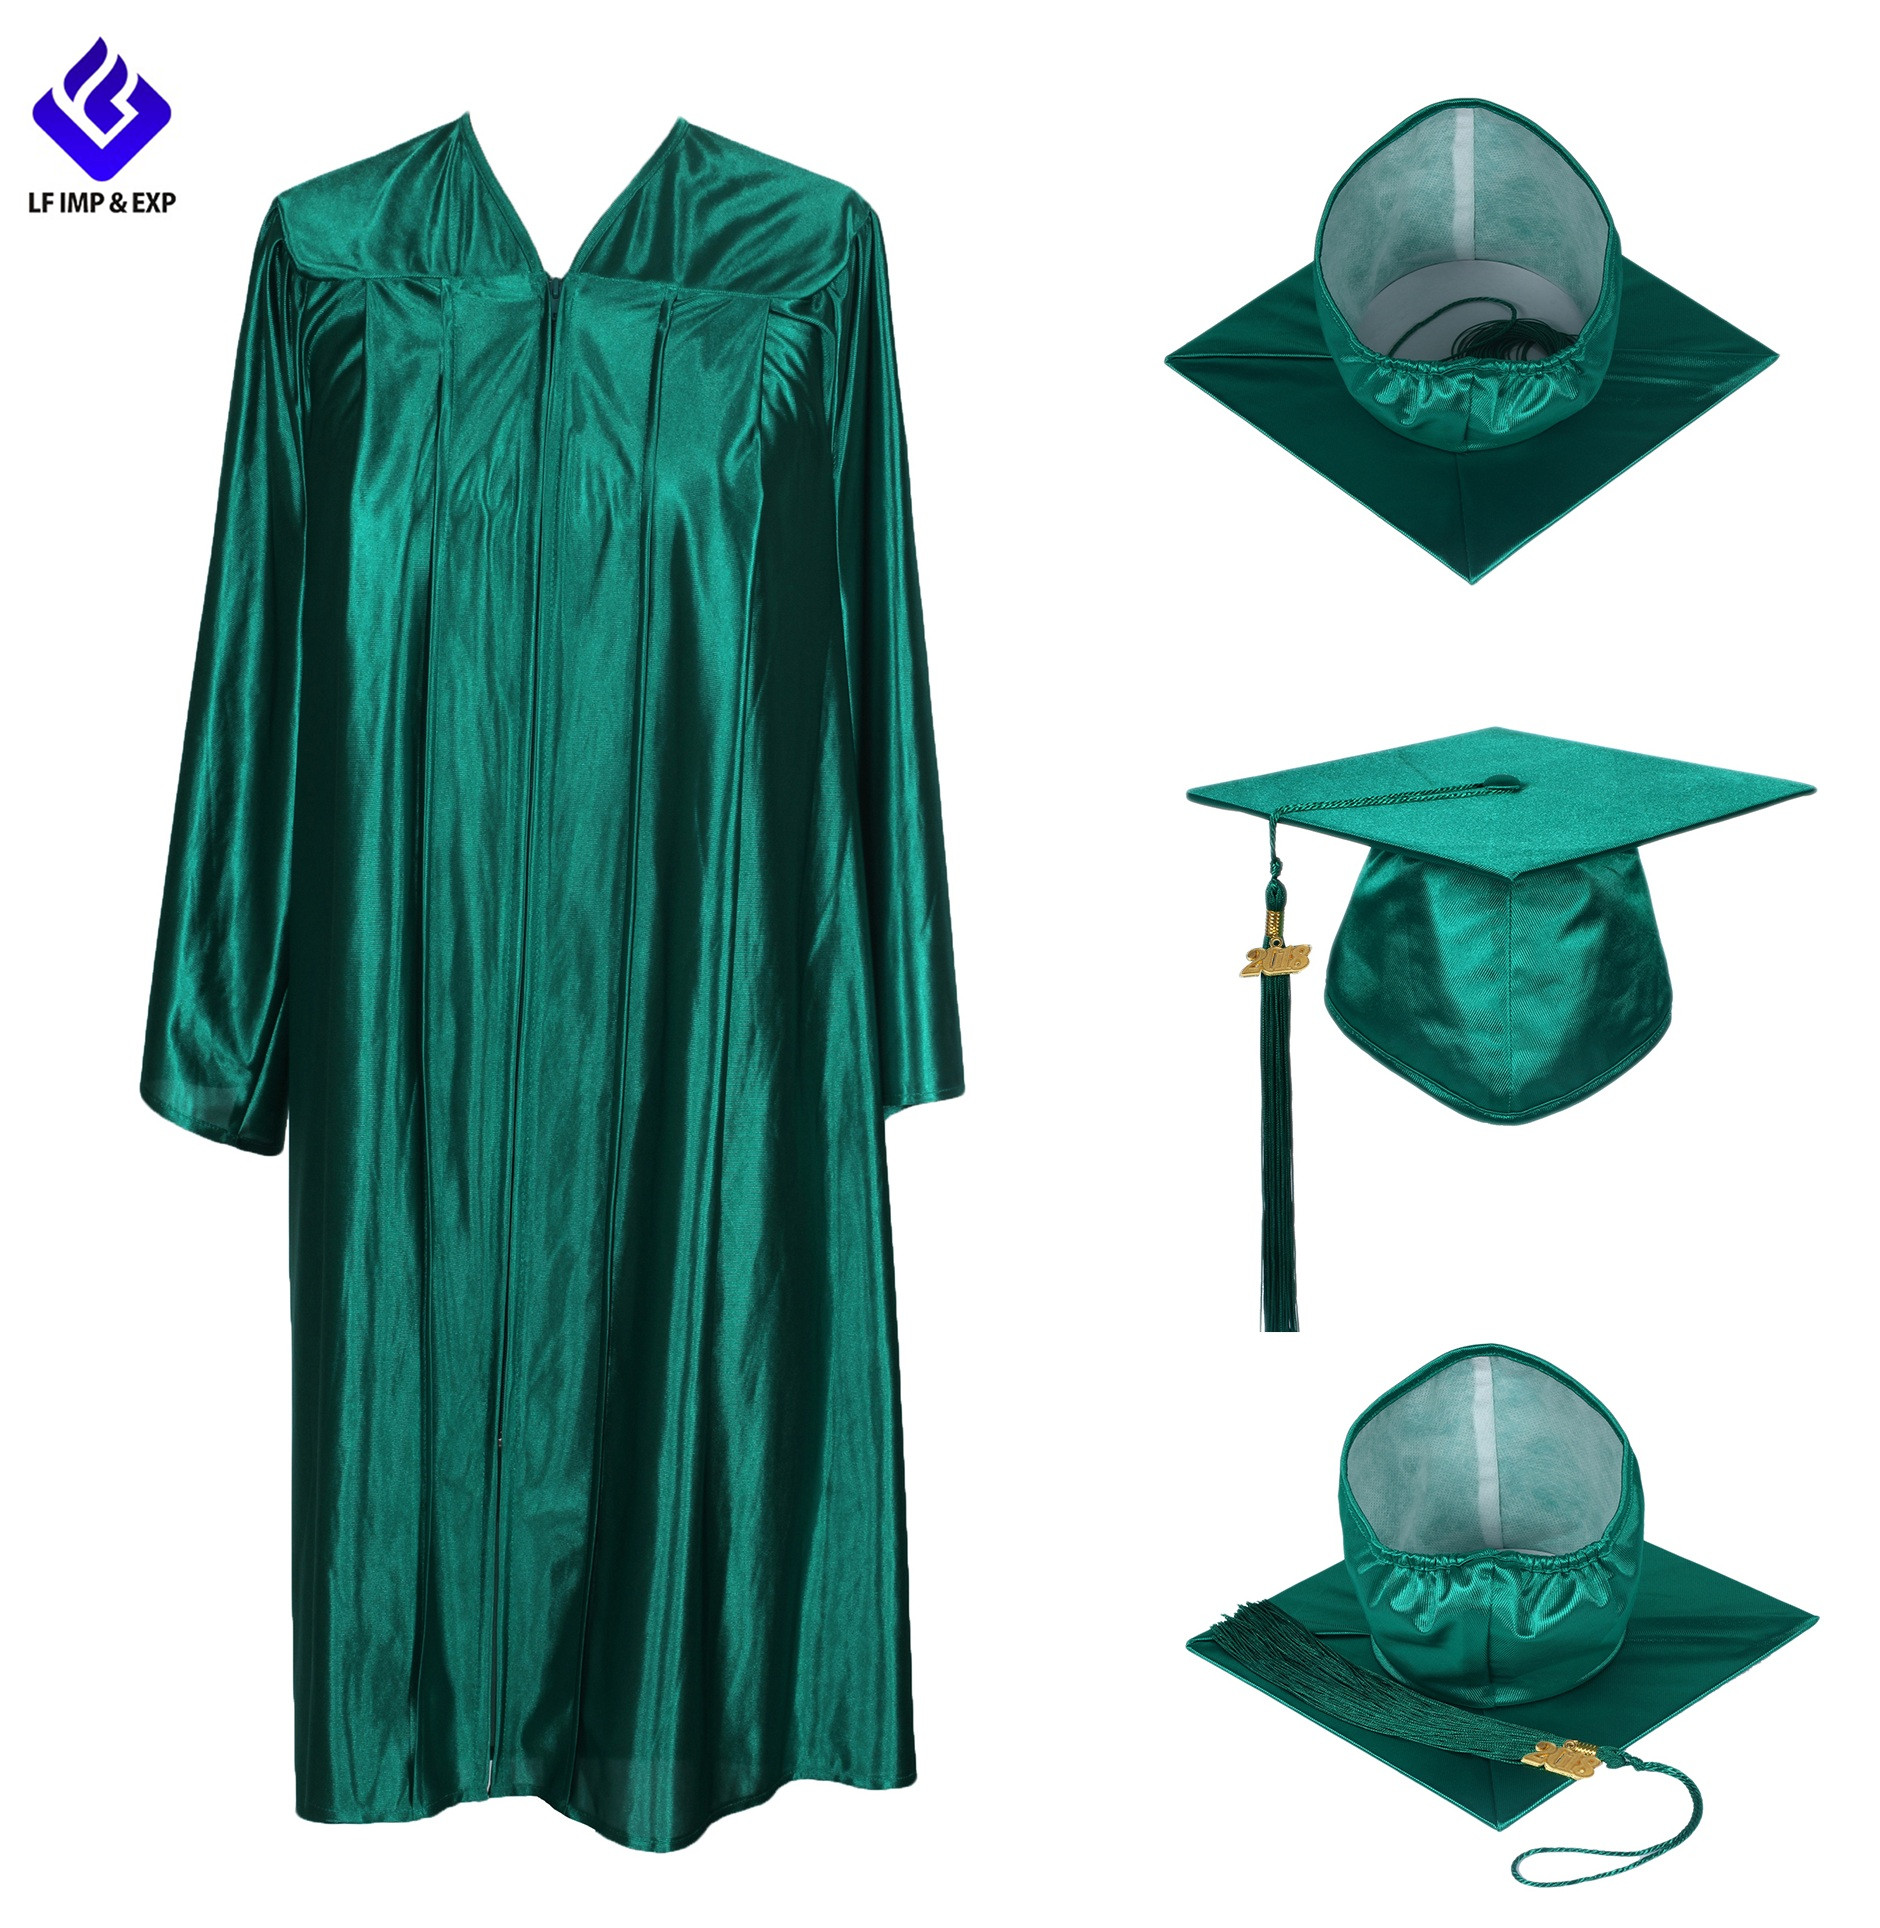 Souvenir Graduation High School Gowns Caps With Shiny fabric